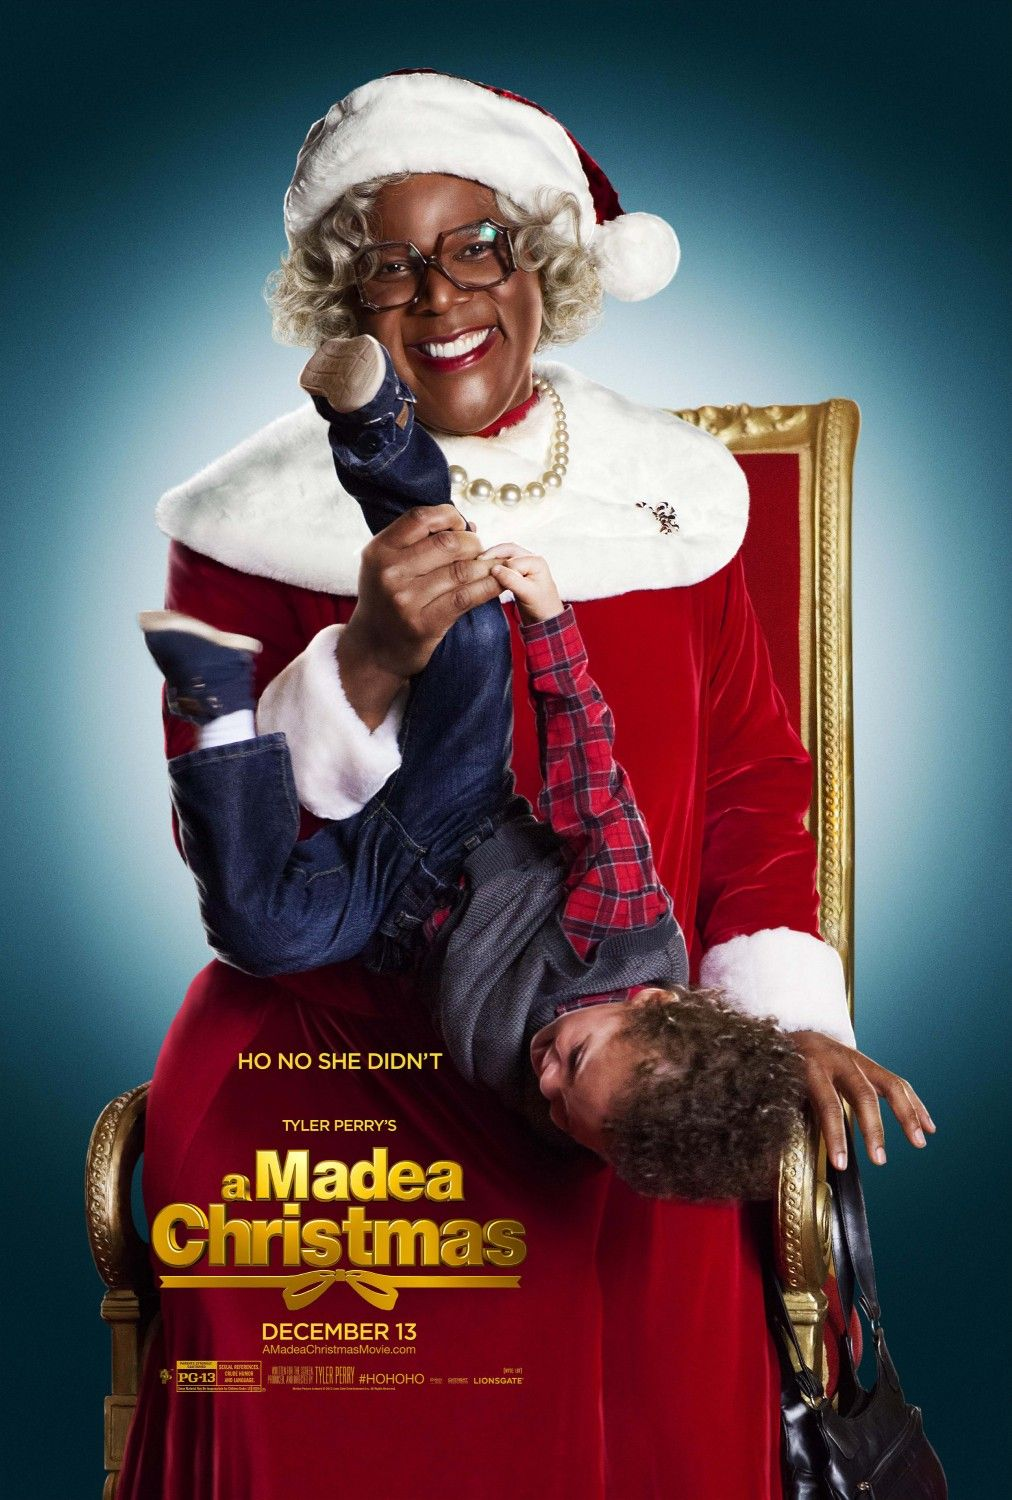 TYLER PERRY'S A MADEA CHRISTMAS Trailer | Collider